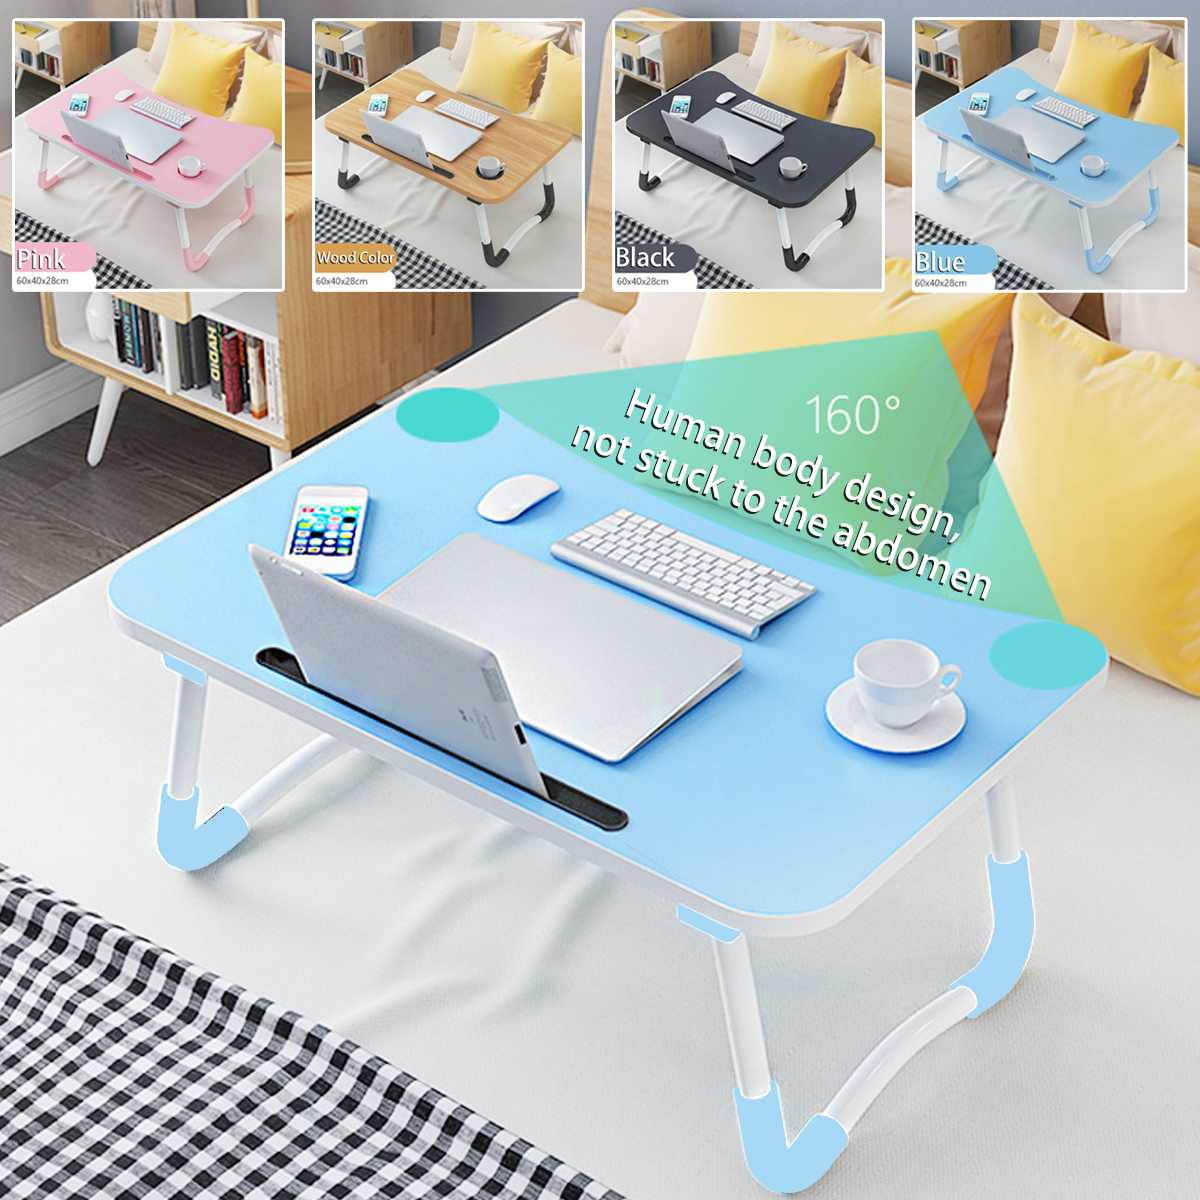 Folding Laptop Table Notebook Desk Breakfast Serving Bed Trays Wooden Foldable Computer Desk Stand Portable Study Table Desk